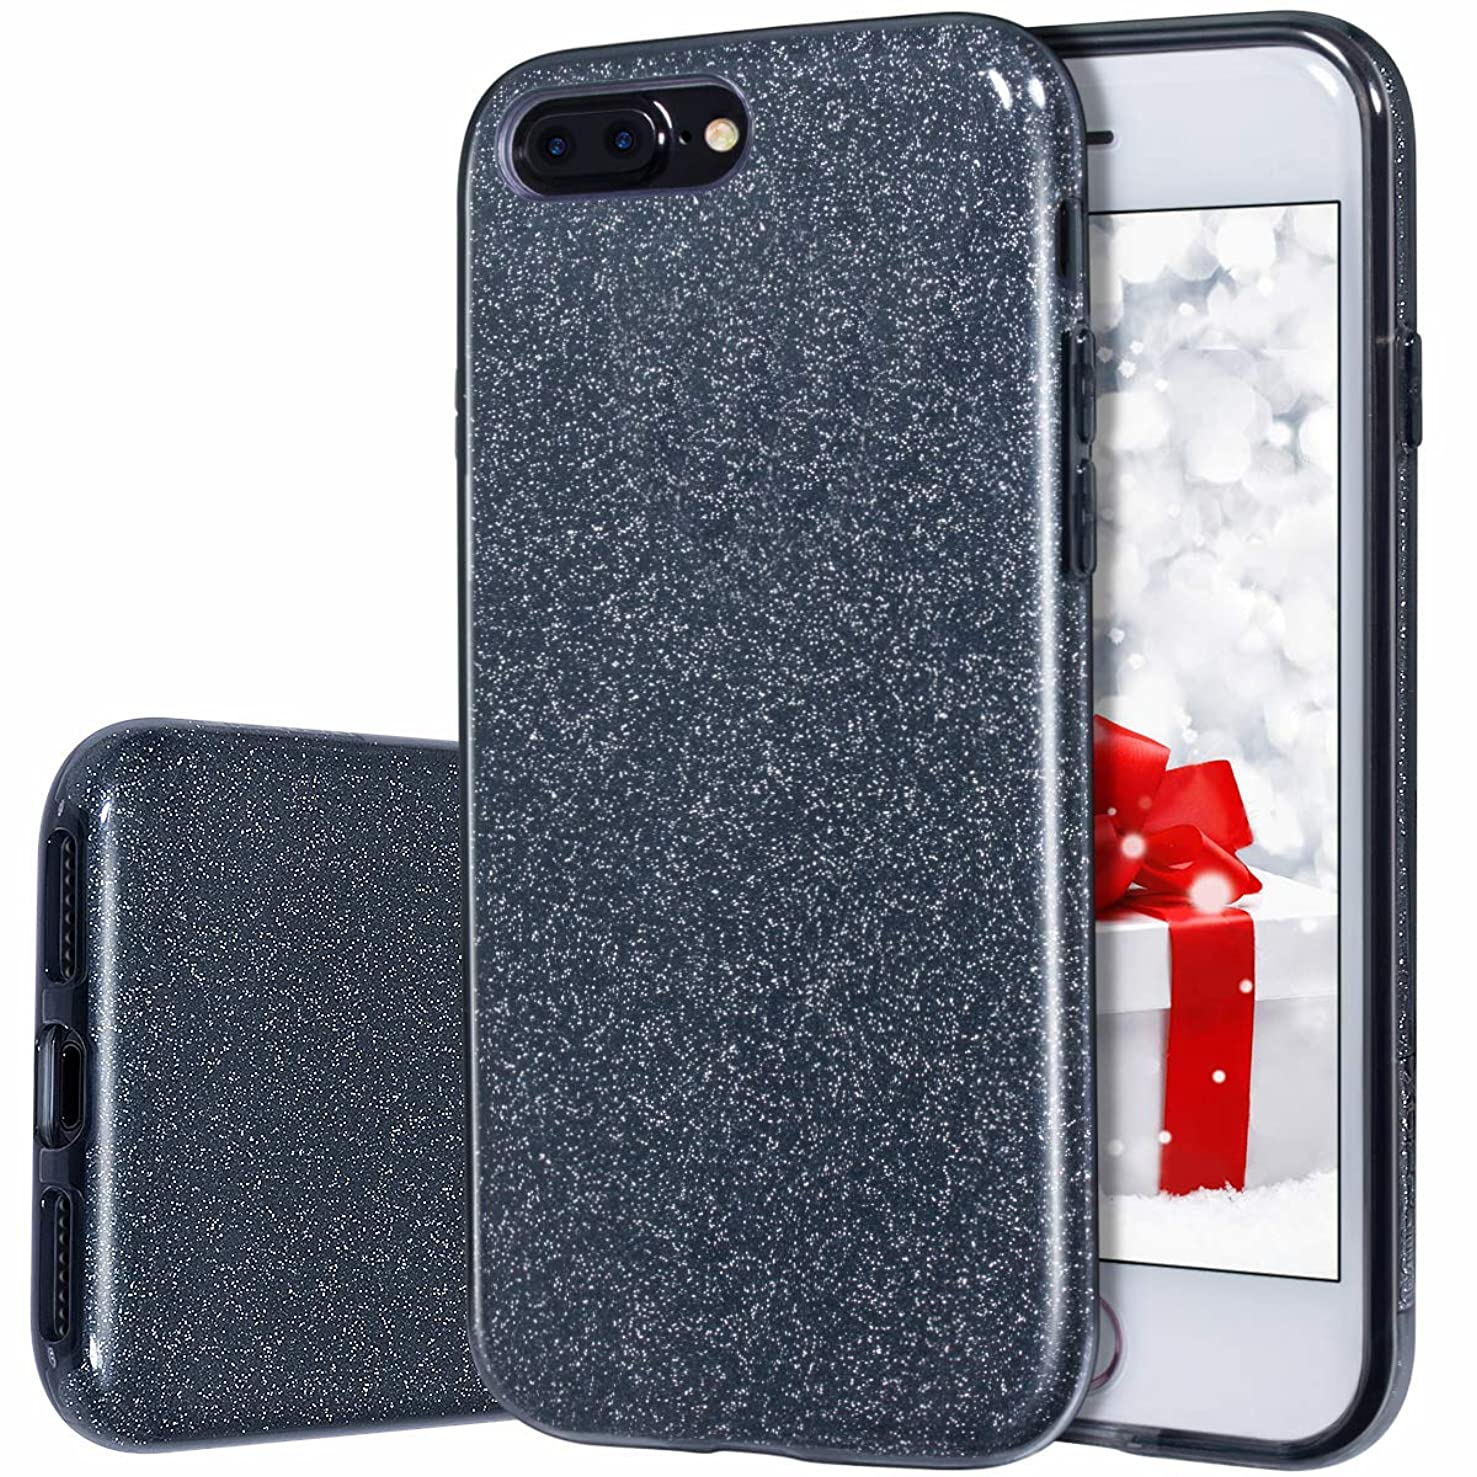 iPhone 8 Plus Case, MILPROX iPhone 7 Plus Glitter Sparkly Pretty Cute Premium 3 Layer Hybrid Anti-Slick/Protective/Soft Slim Thin Case for Girls/Women iPhone 7 Plus / 8 Plus - Black